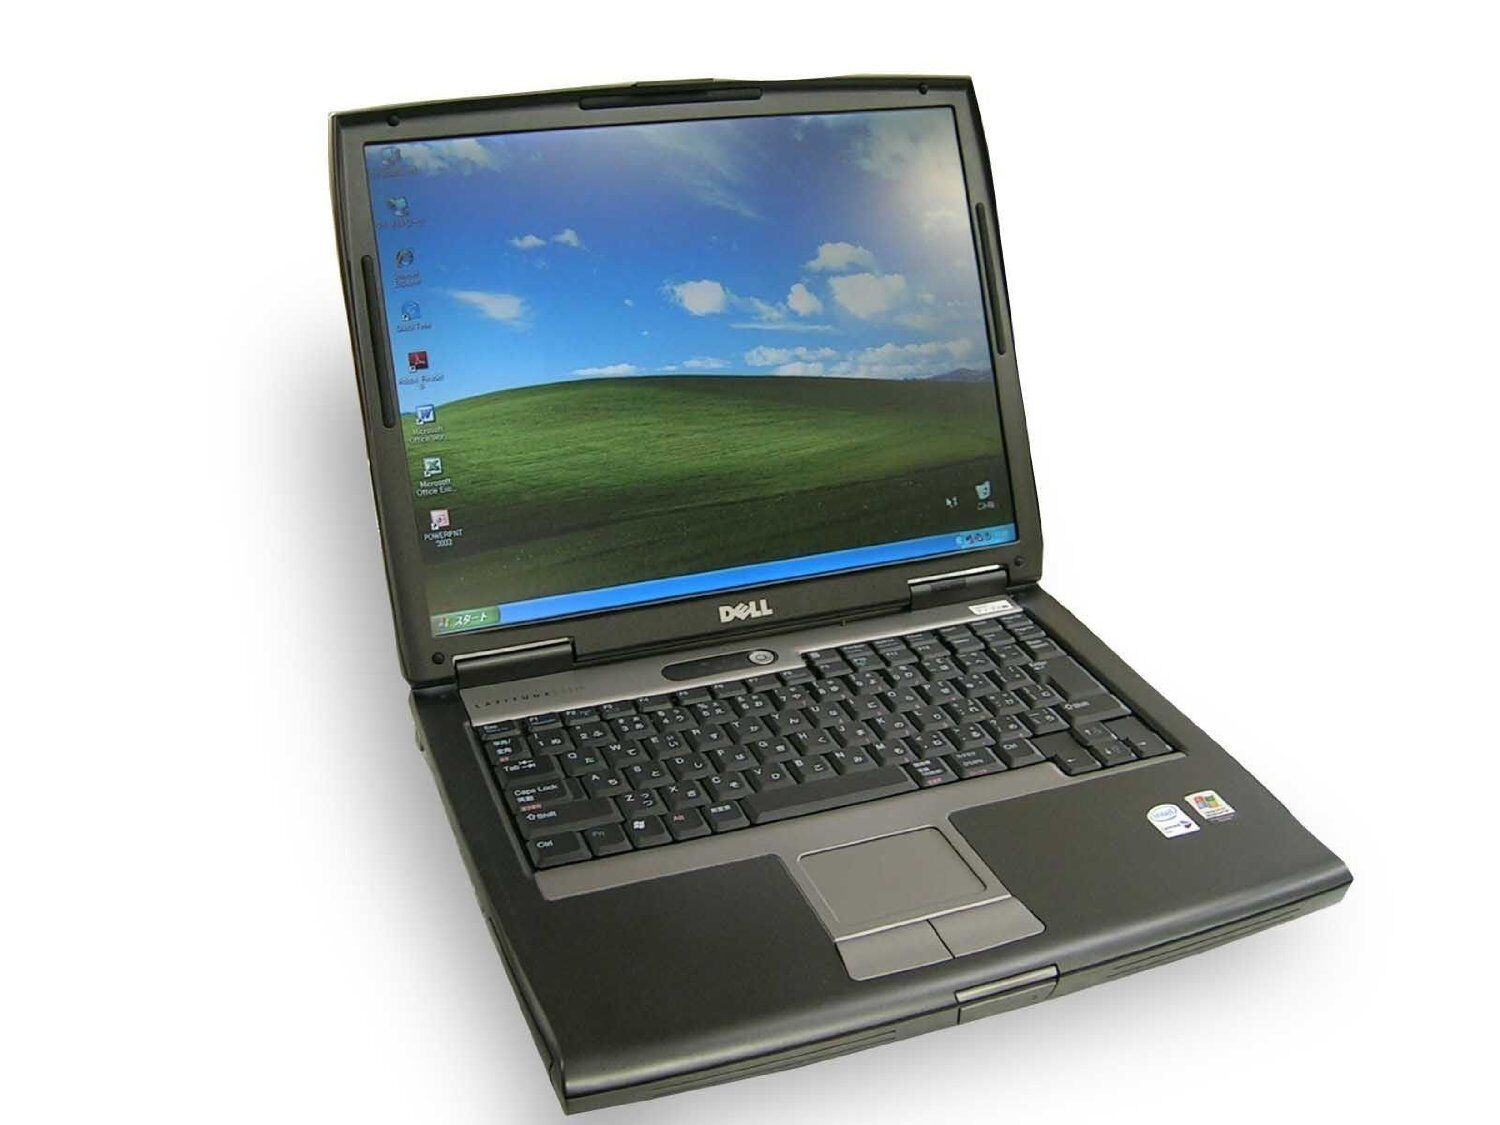 Replacement Windows Cost >> Fast LAPTOP Dell Latitude D520 Intel Dual Core 2 GB RAM 80 GB HDD WINDOWS 7 | eBay